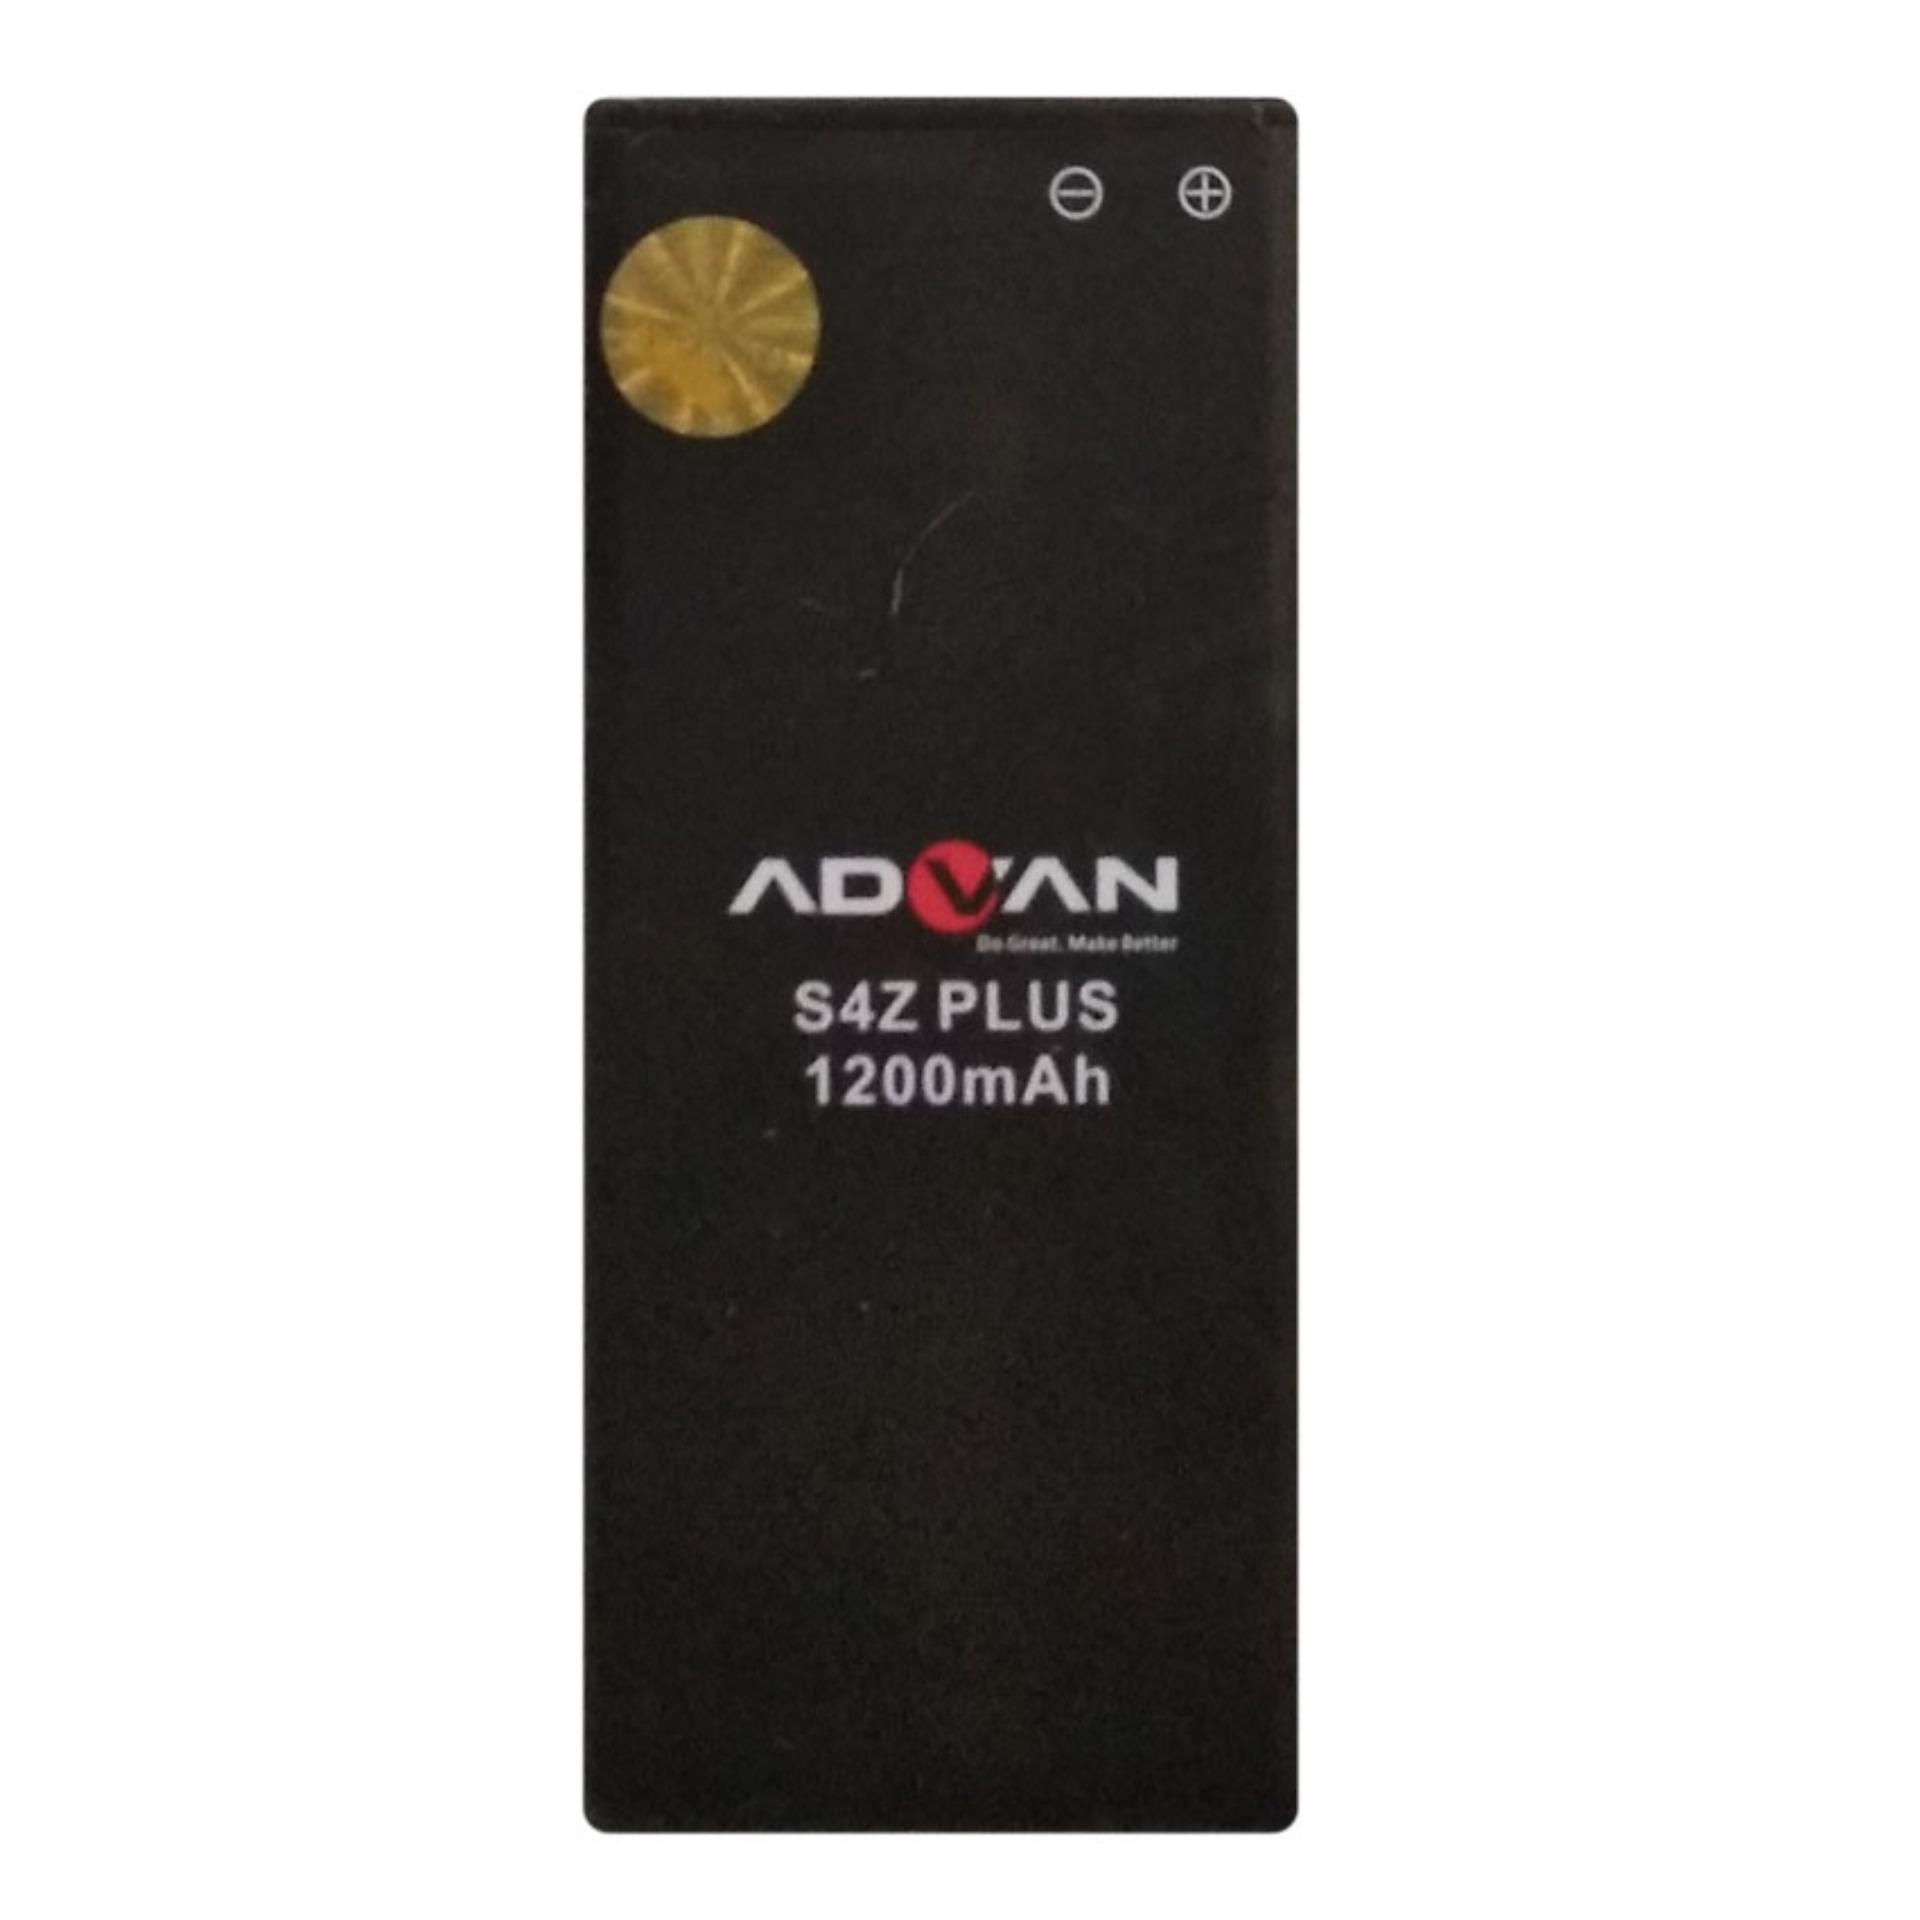 Advan Original Battery - Baterai Original Advan S4Z Plus - 1200 mAh